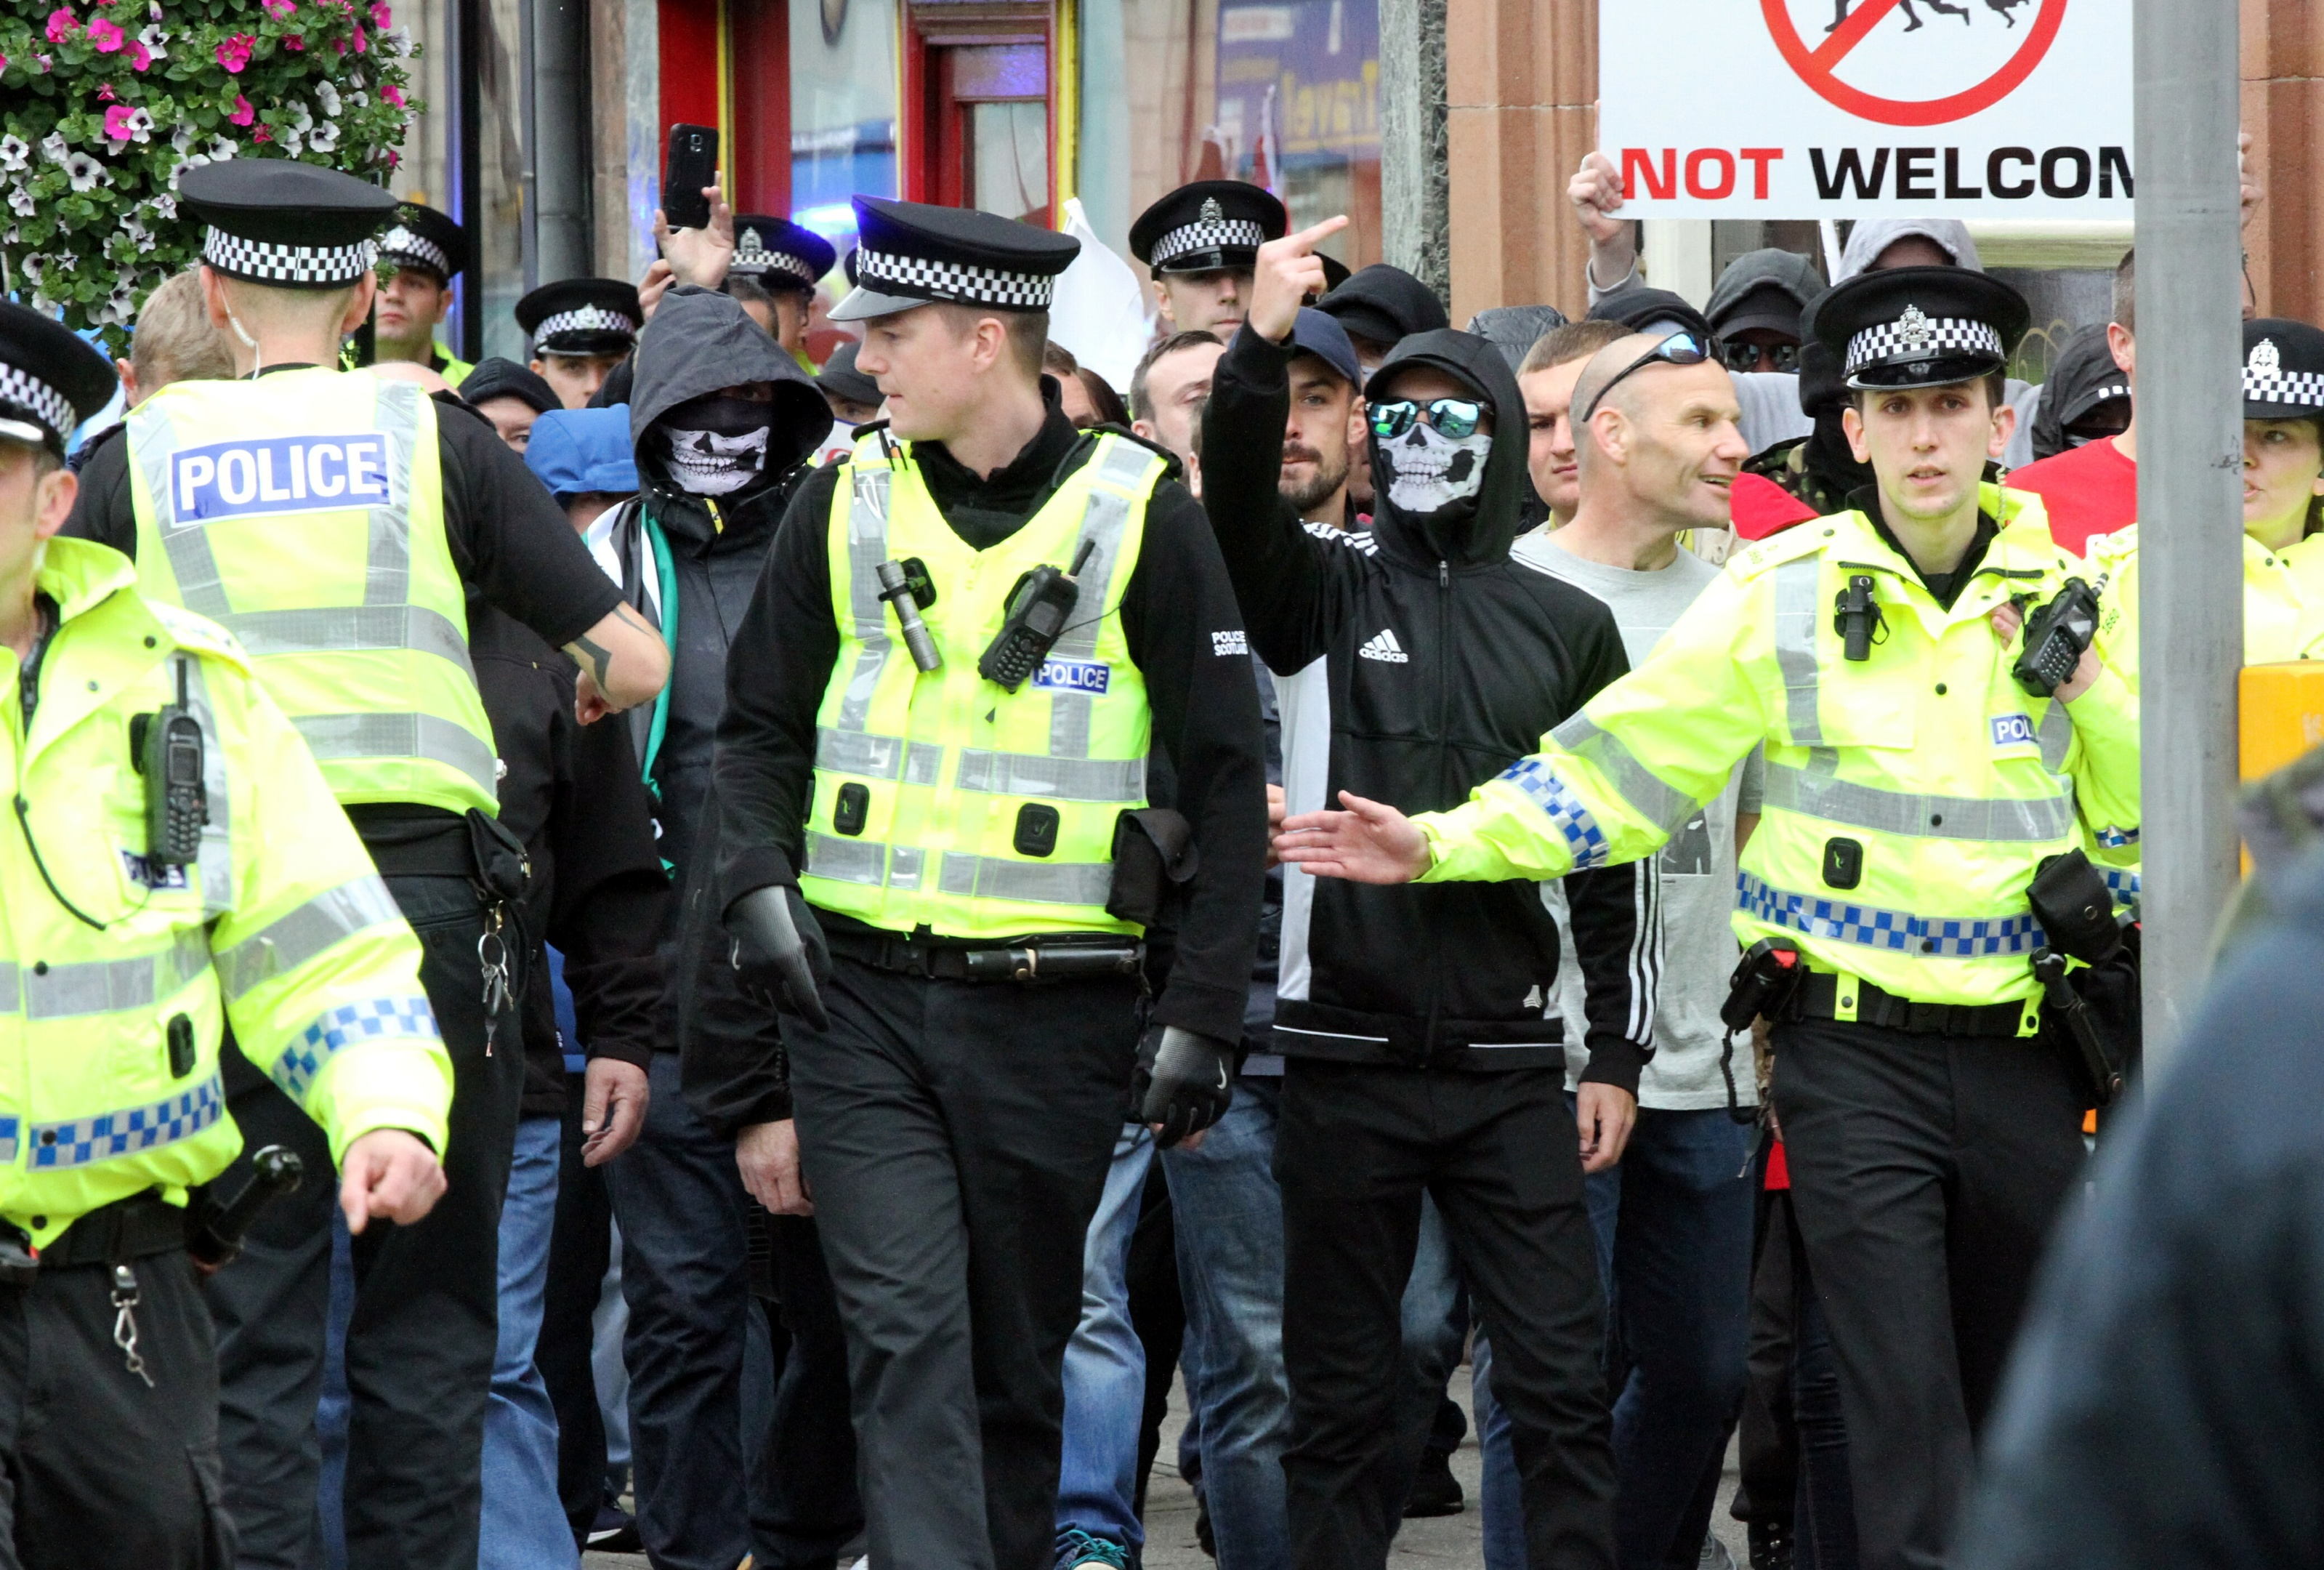 The Scottish Defence League march in Perth